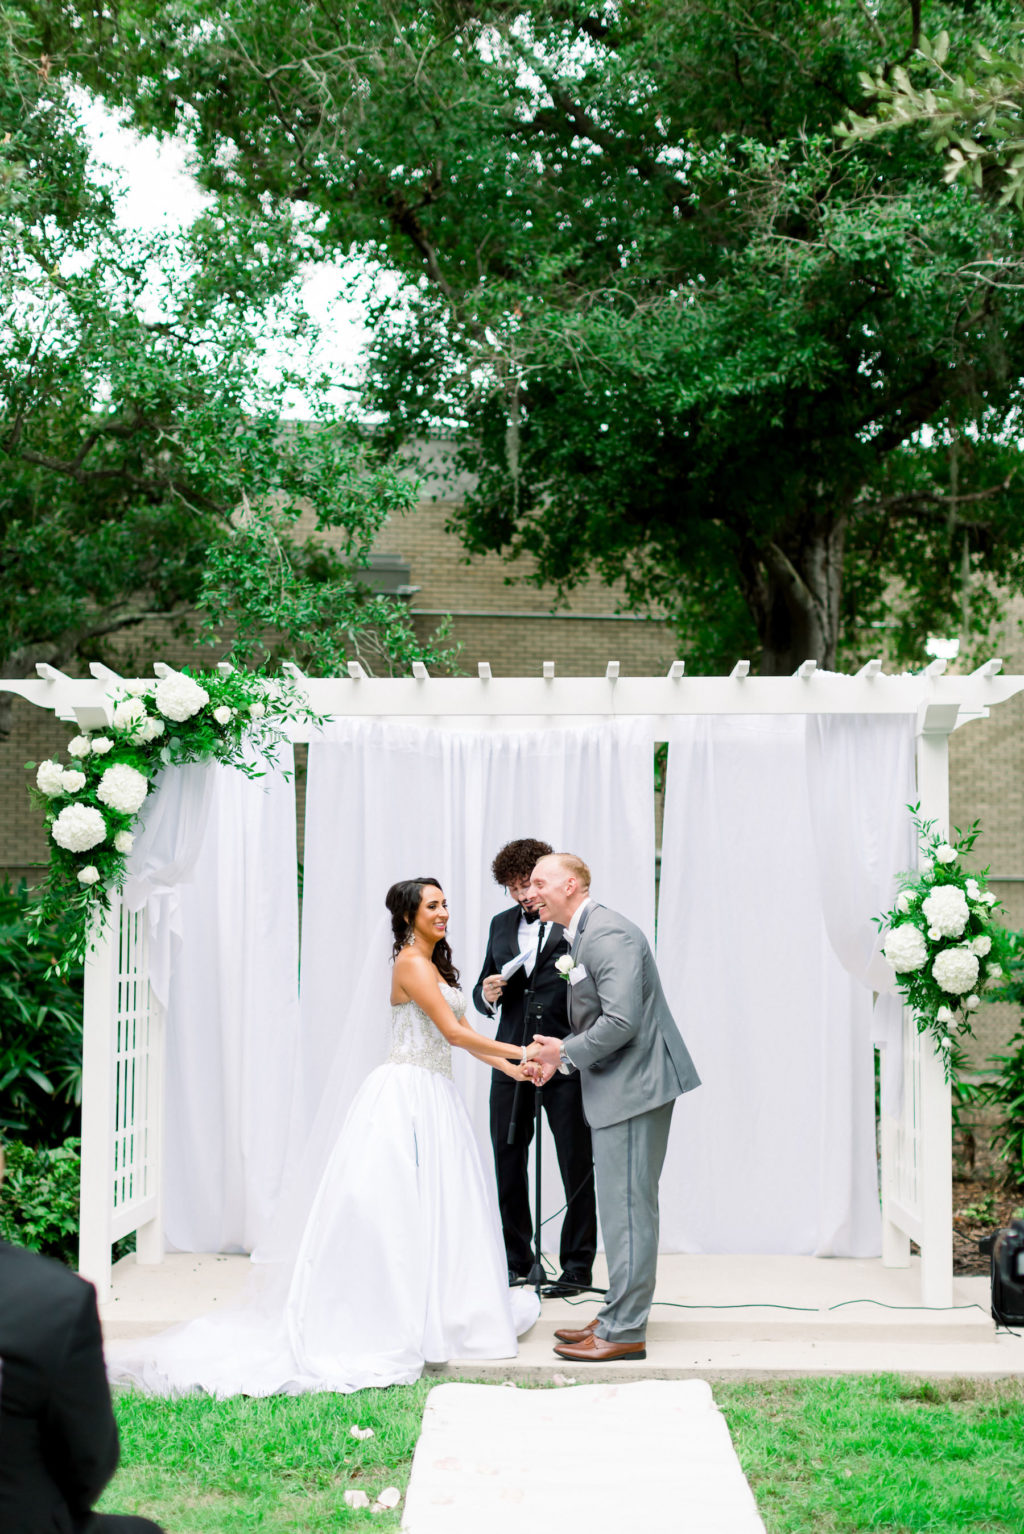 Romantic Bride and Groom Exchanging Vows Wedding Ceremony Portrait Under White Arbor Arch with Hydrangeas and Greenery Floral Arrangements and White Draping | Wedding Venue Tampa Garden Club | Wedding Photographer Shauna and Jordon Photography | Wedding Dress Truly Forever Bridal